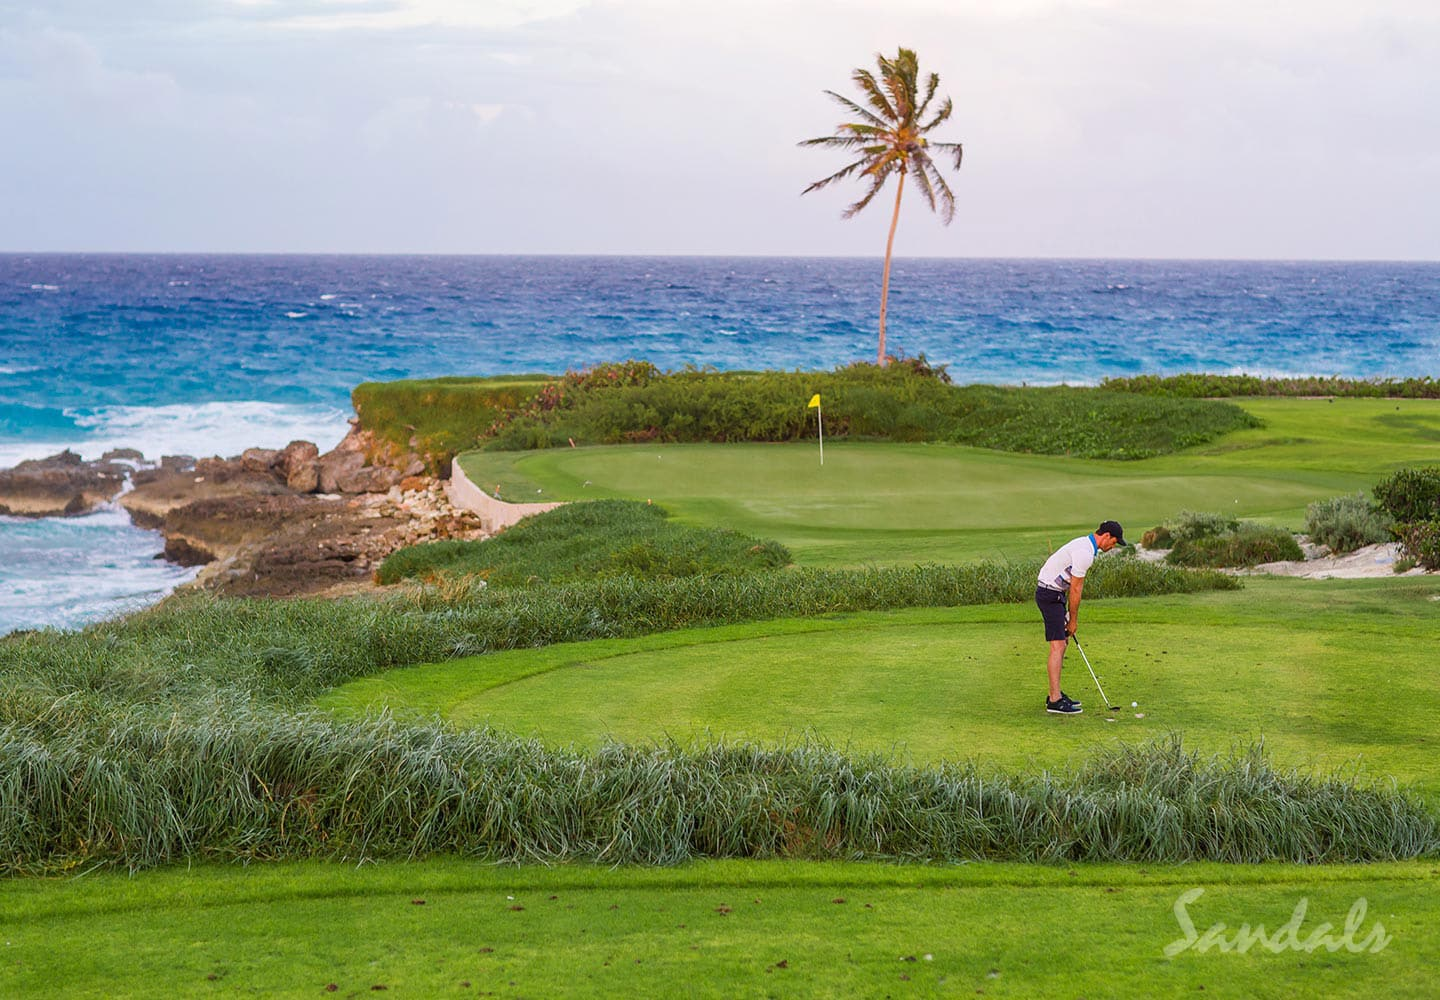 bird eye view of the 18-hole golf course of the Sandals Emerald Bay Golf, Spa and tennis resort, Great Exuma, Bahamas, all inclusive group vacation packages.